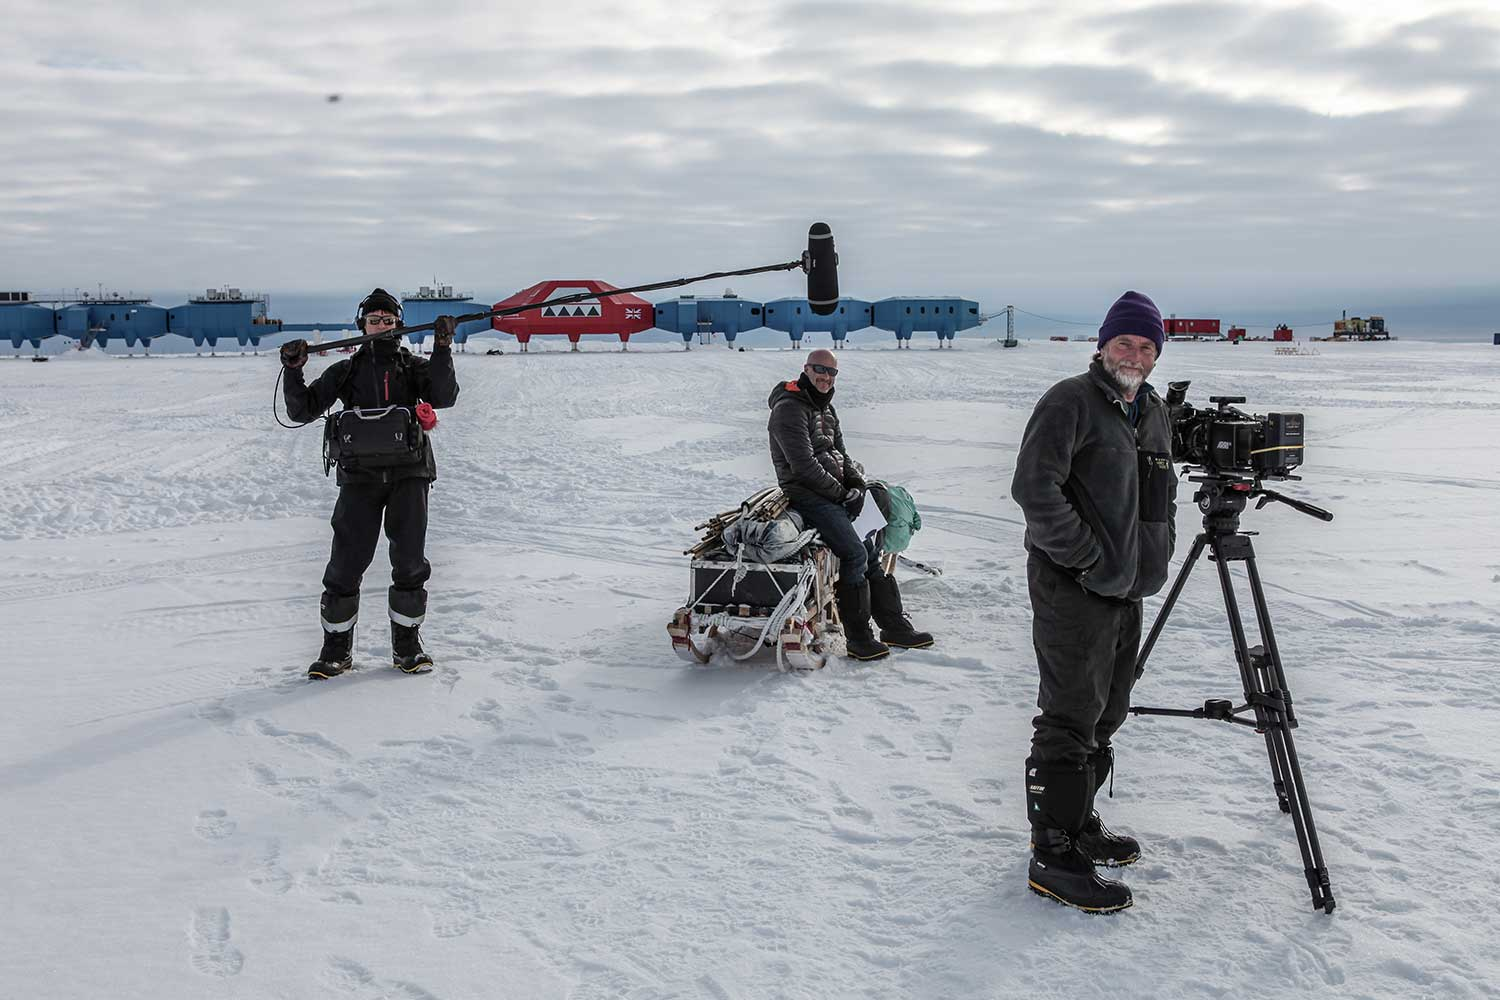 With the British Antarctic research station at Halley in the background from left to right on sound was Doug Dreger, the presenter Peter Gibbs and David Baillie with his Arri Alexa Mini camera.